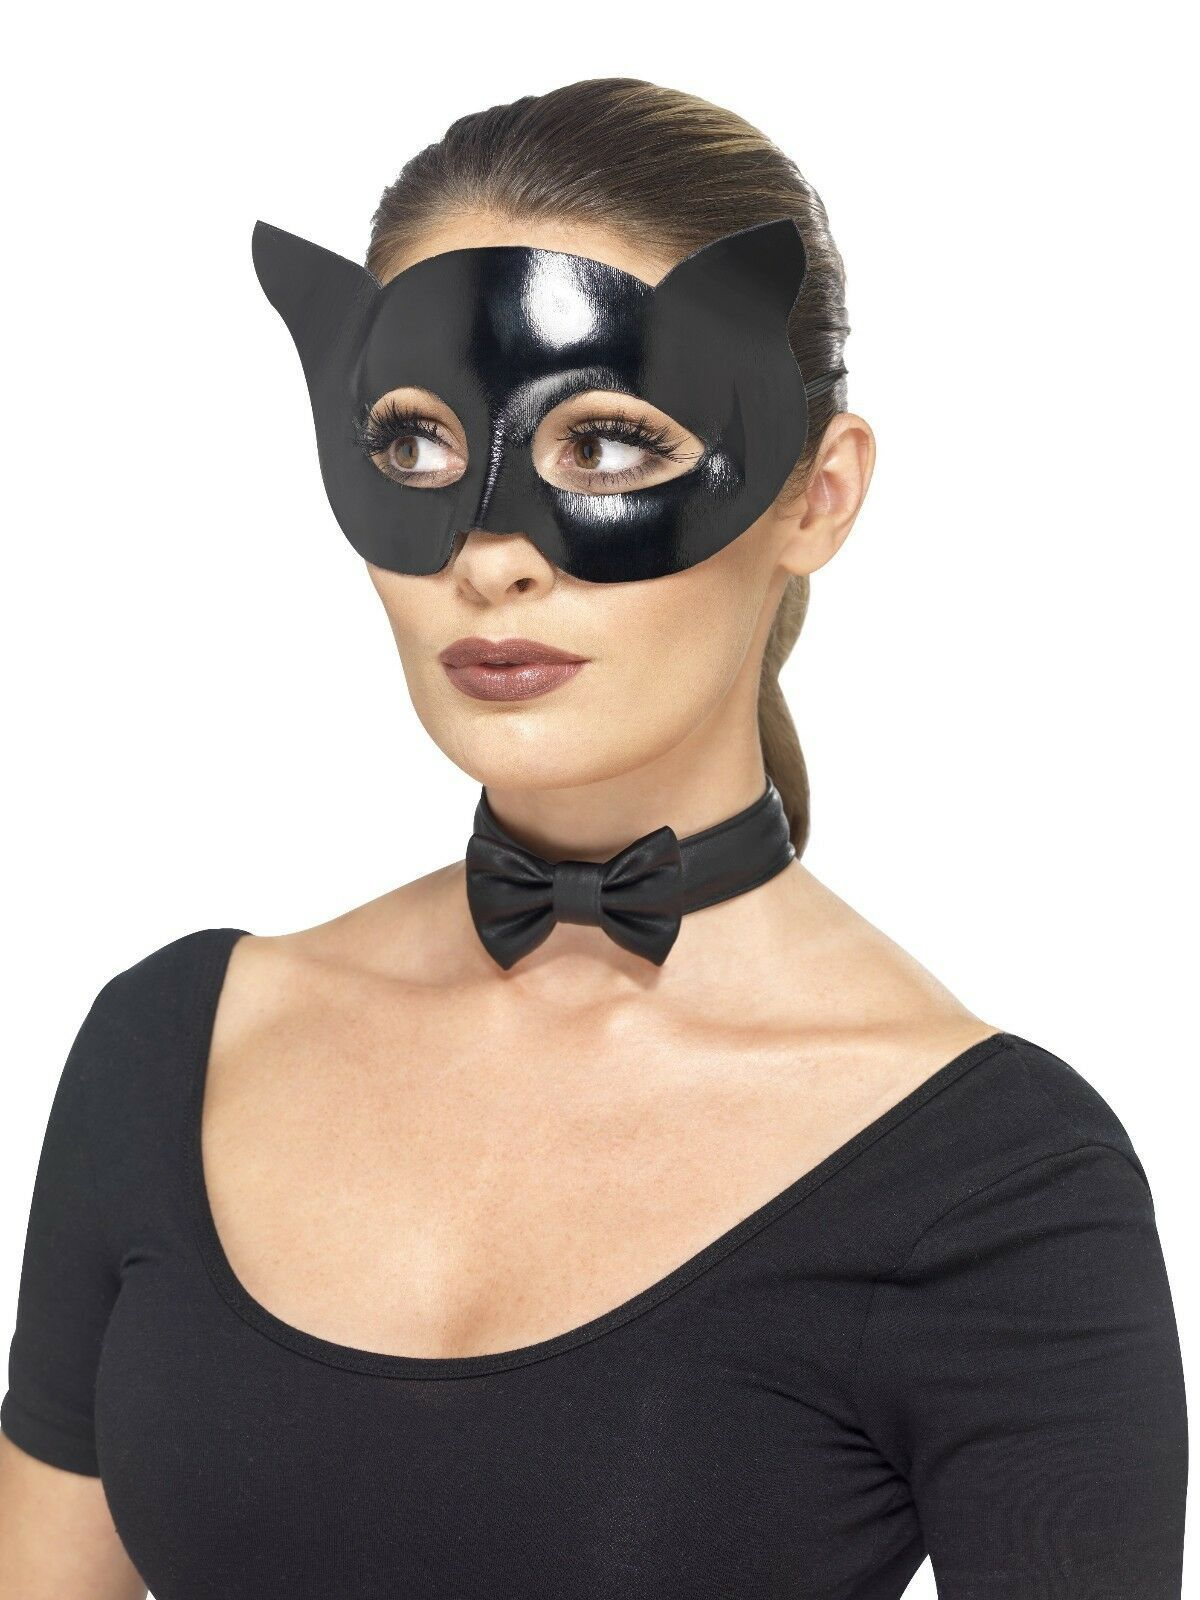 Adult Black Cat Mask and Collar Set Fancy Dress Book Day Costume Accessories Kit - $25.62